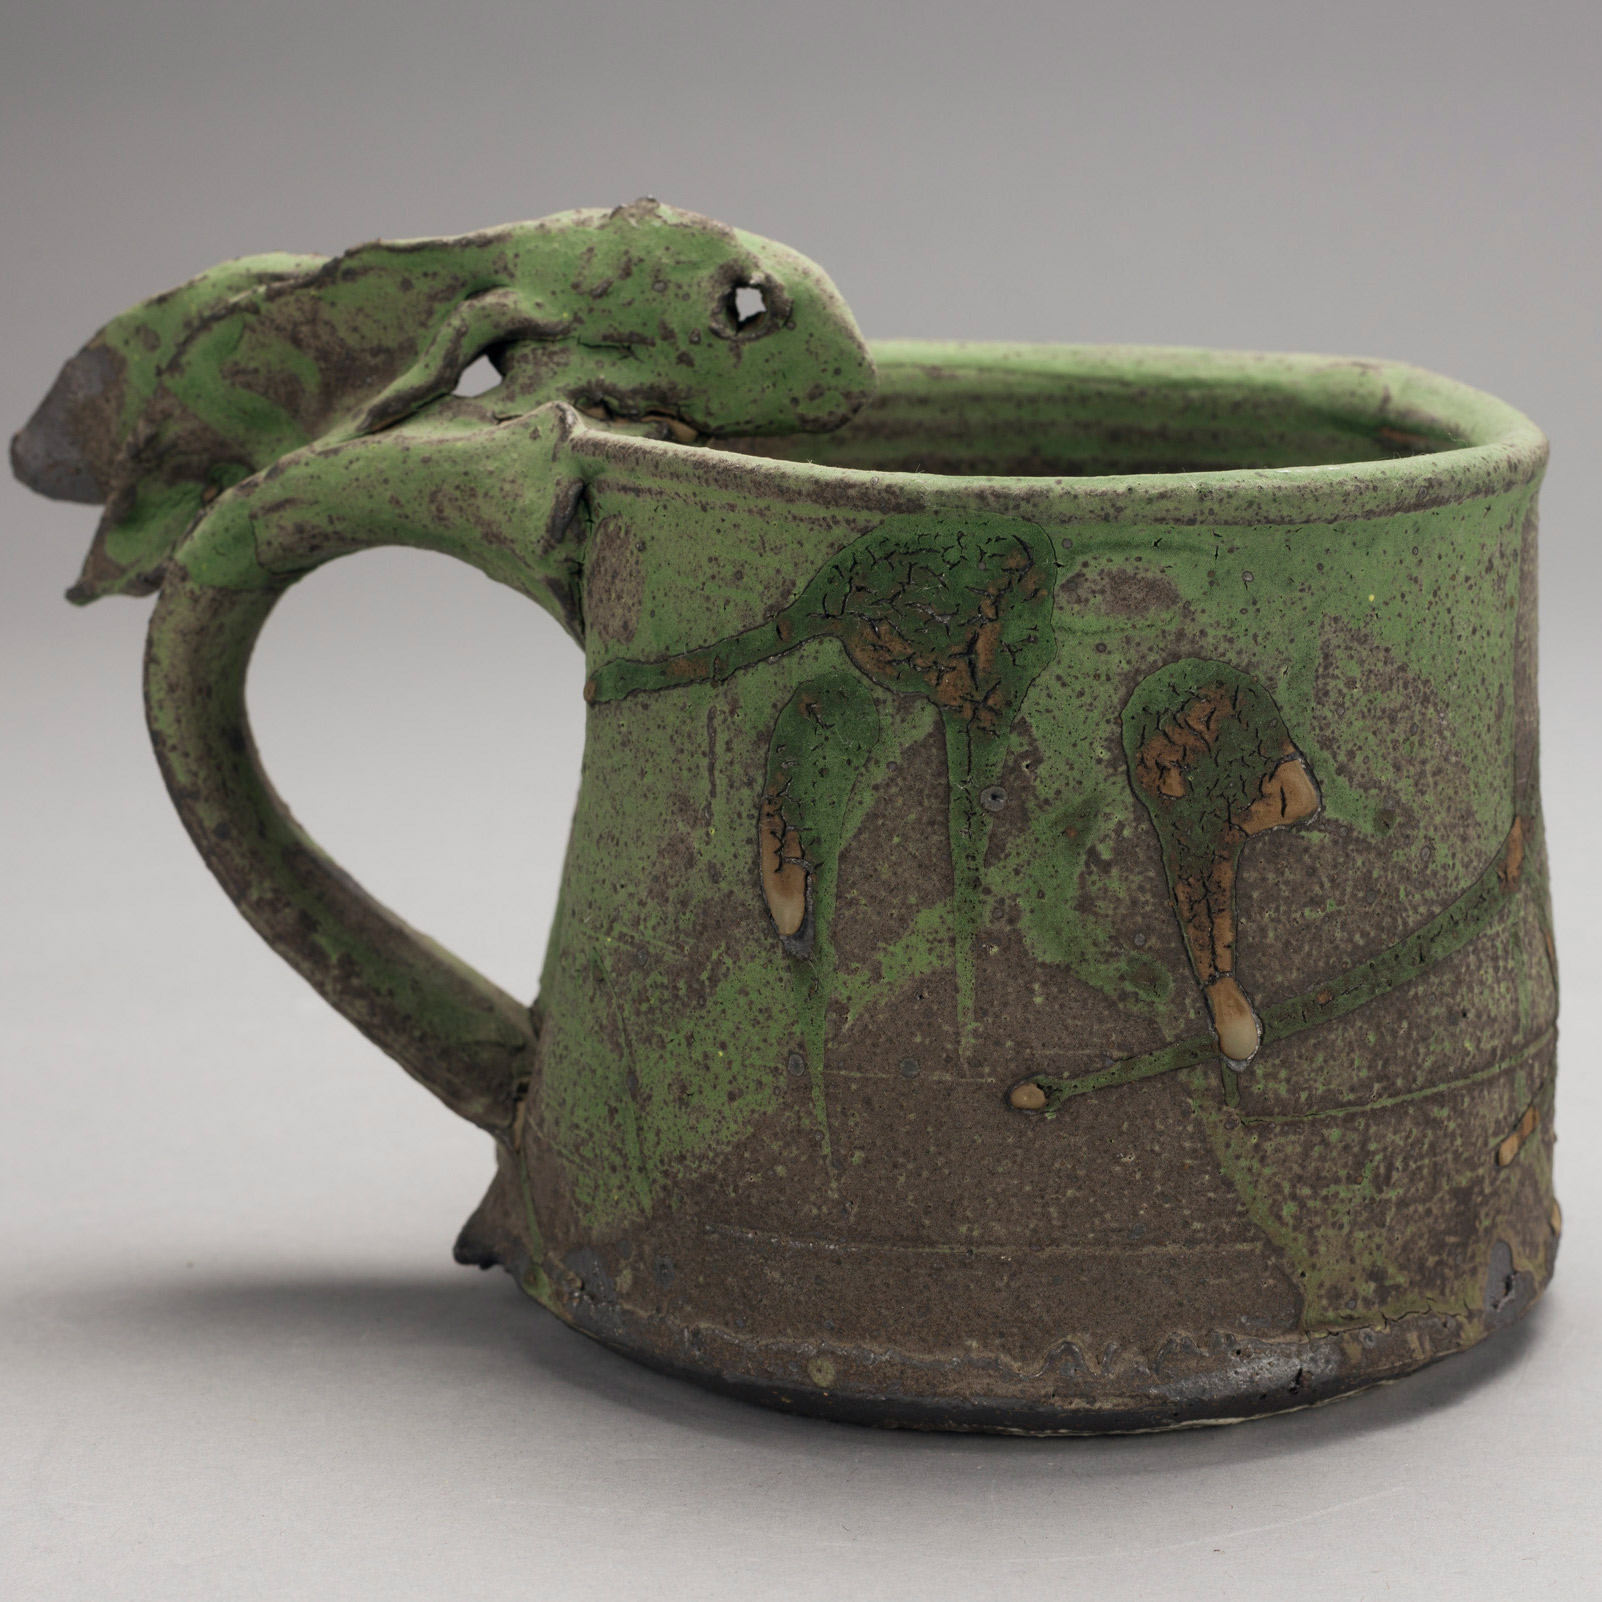 """ken ferguson kansas city ceramics essay Link to ken ferguson""""s obituary in the kansas city star newspaper, and thoughts on ken ferguson from anne m bracker and cindy bracker as seen in ceramics monthly and pottery production practices."""